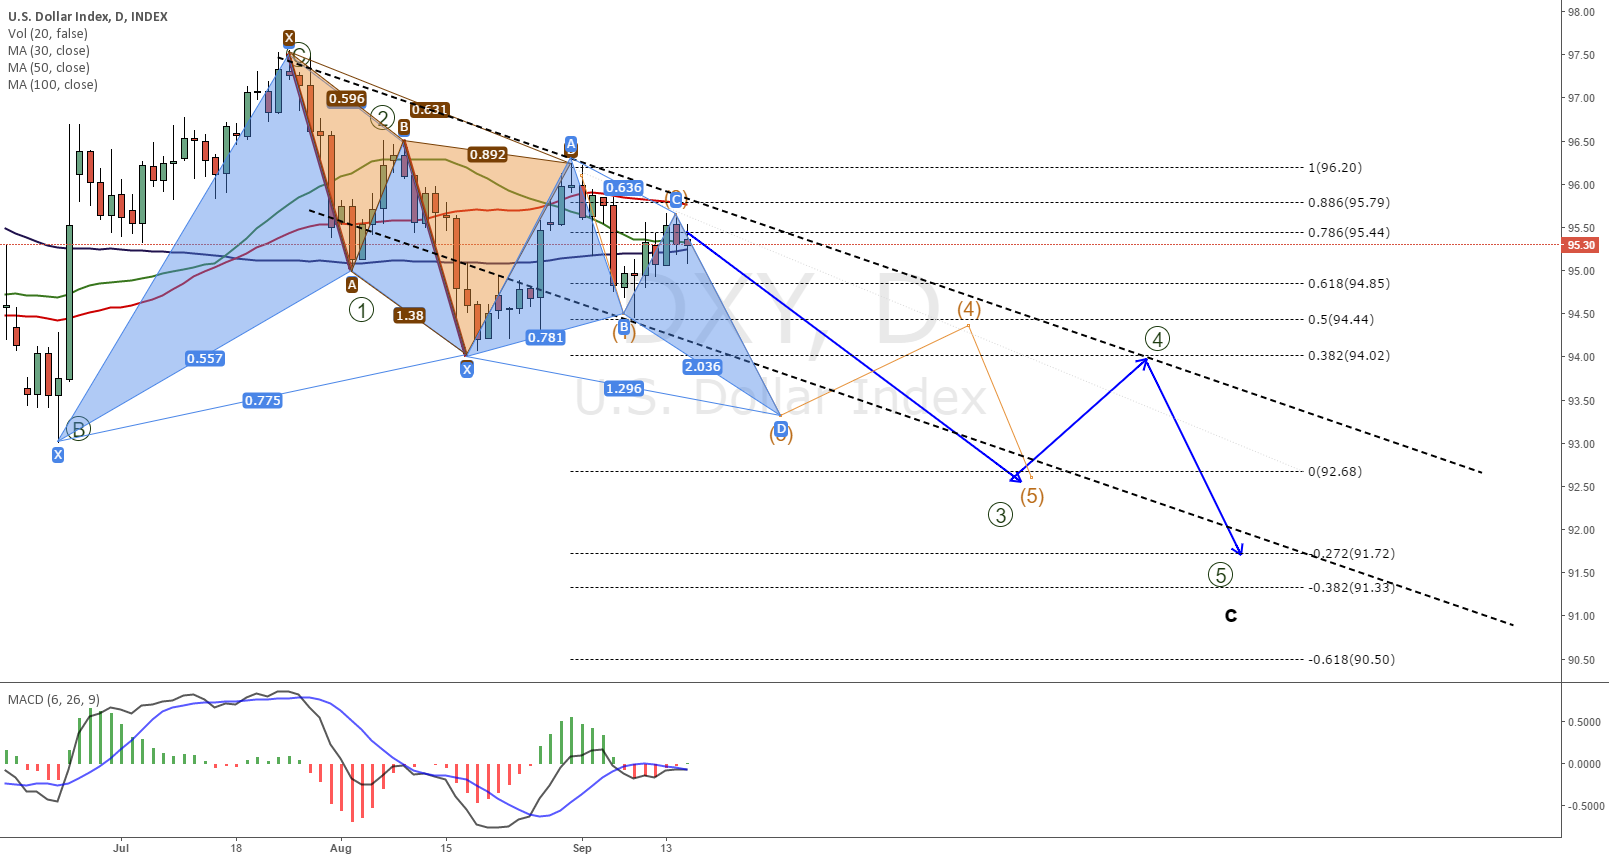 DXI continuation of the last predictions